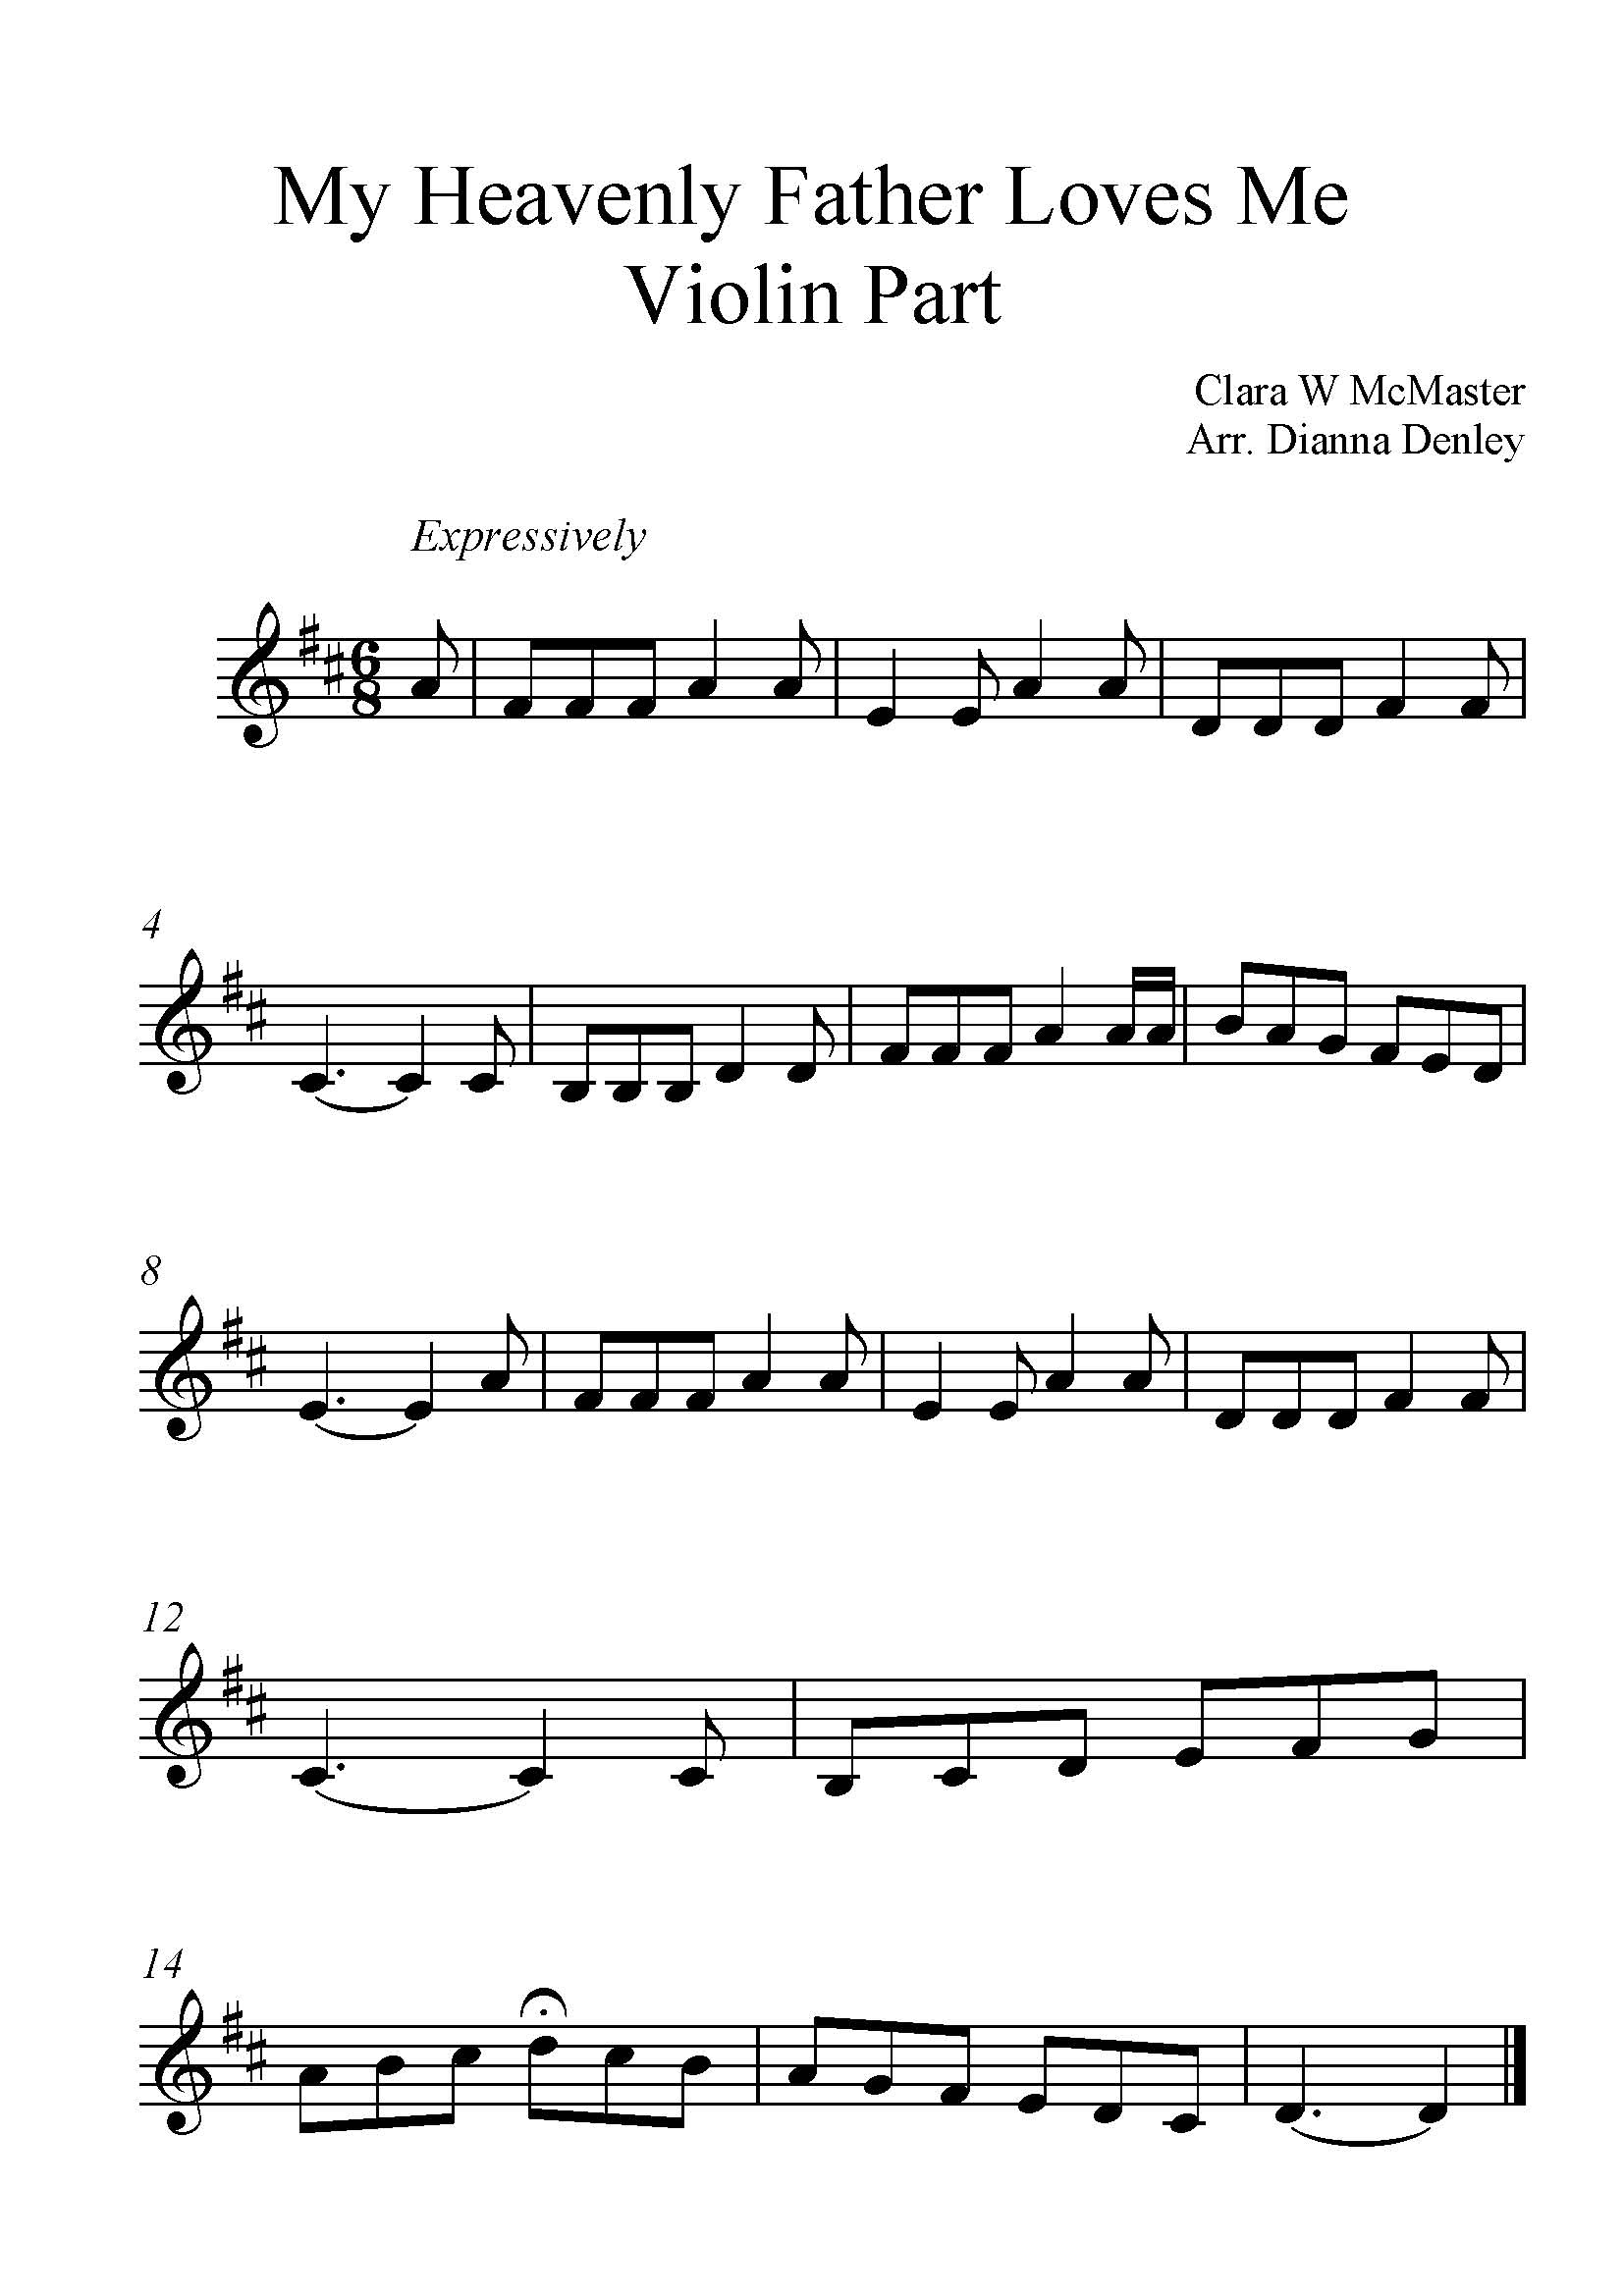 Coloring pages fun my melody coloring pages - My Heavenly Father Loves Me For Violin With Piano